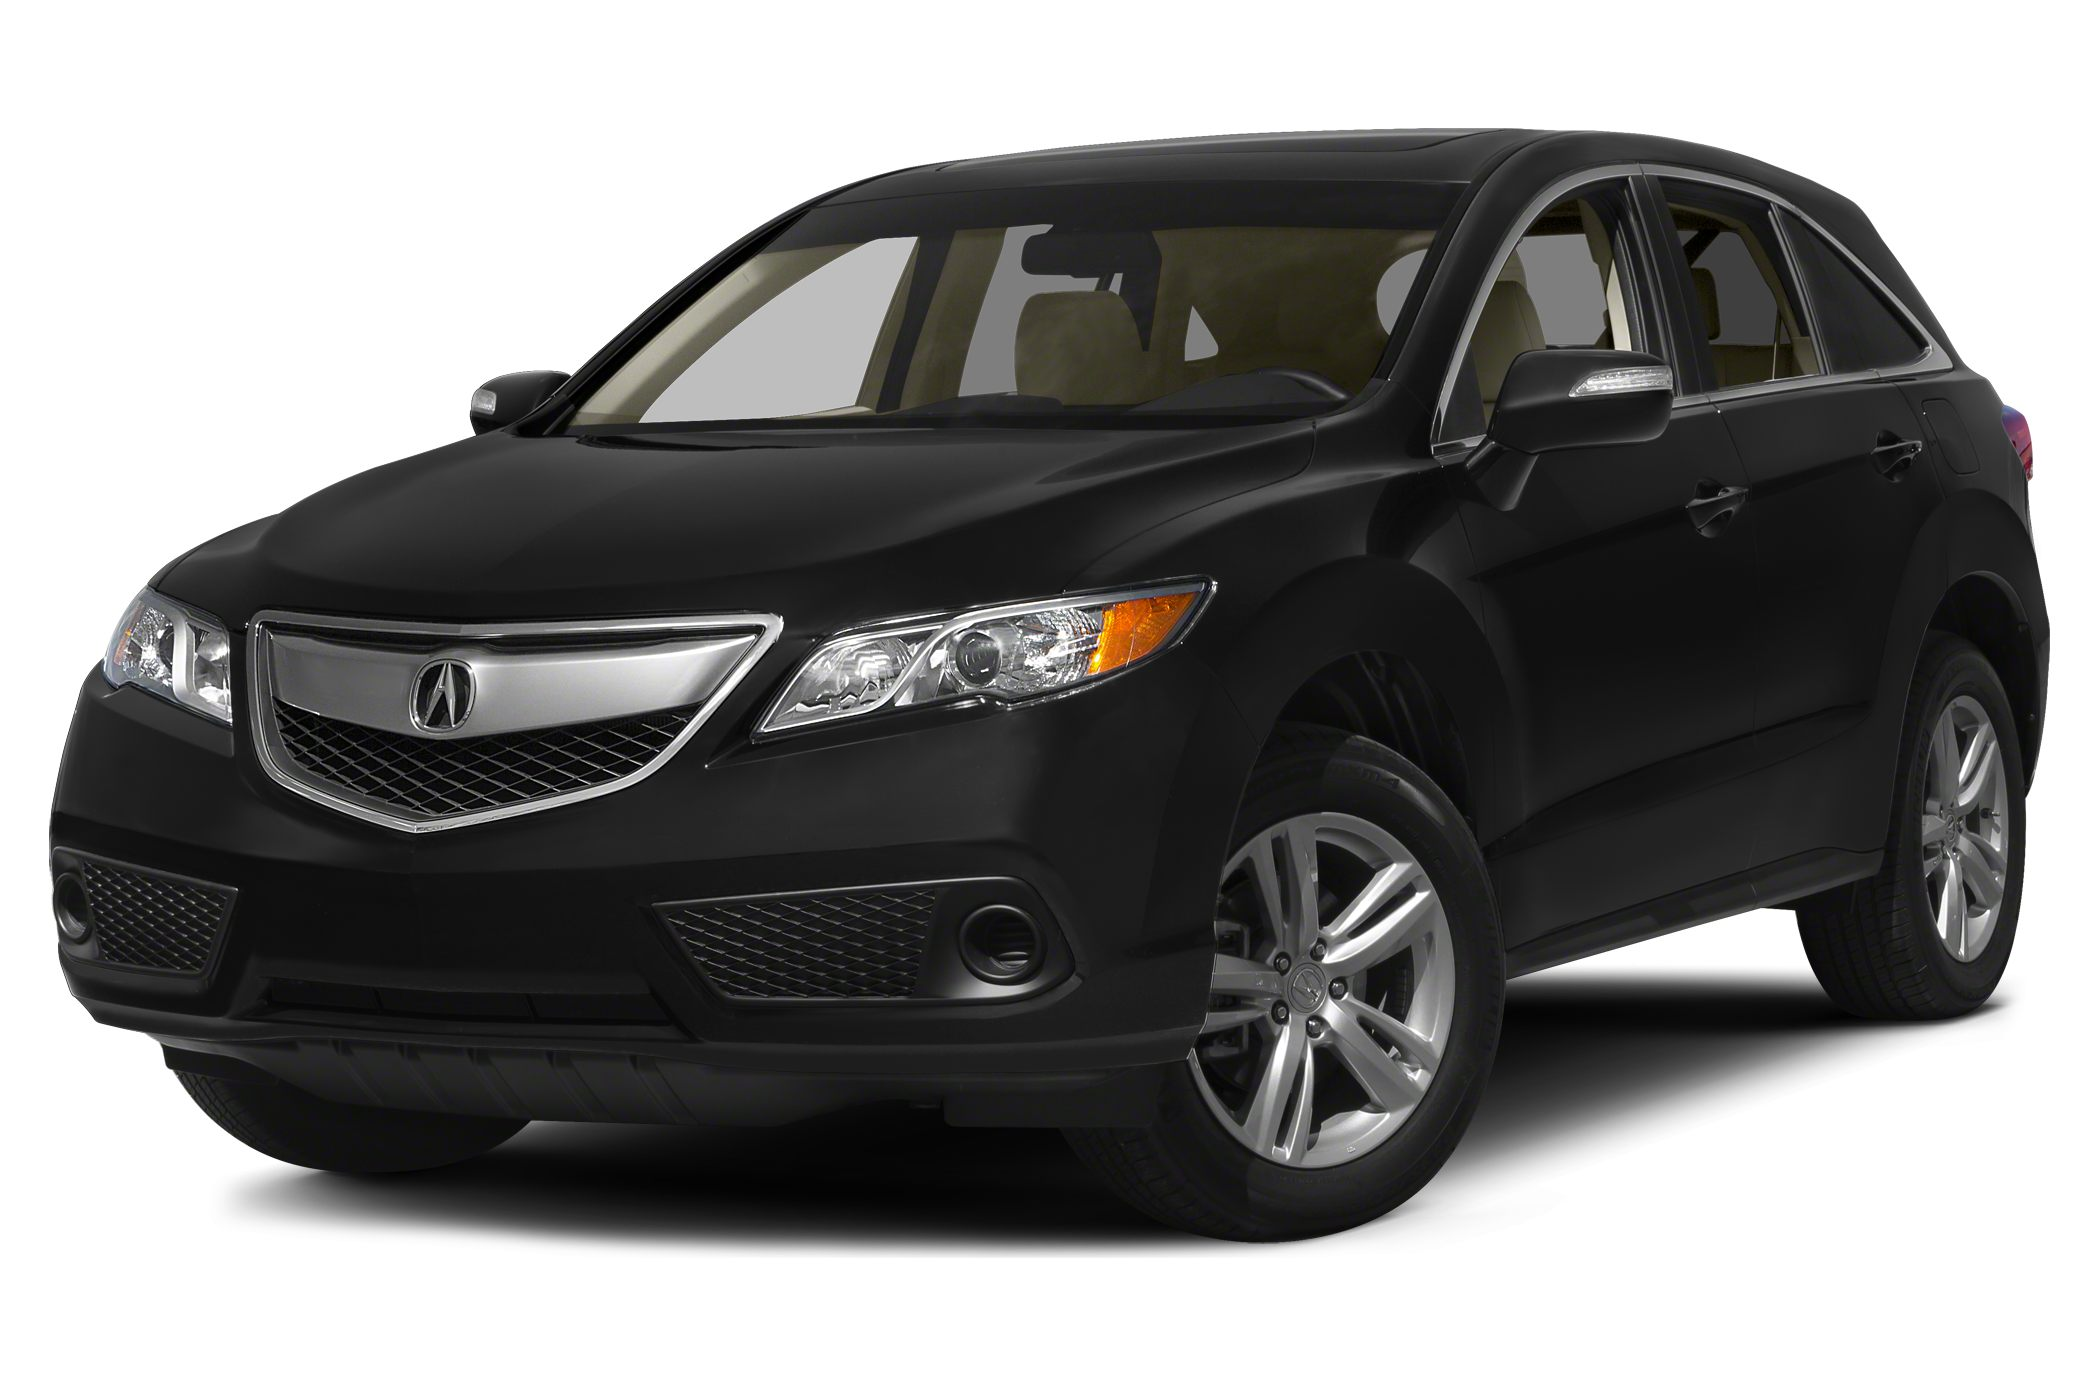 2015 Acura RDX Base SUV for sale in Minneapolis for $37,415 with 18 miles